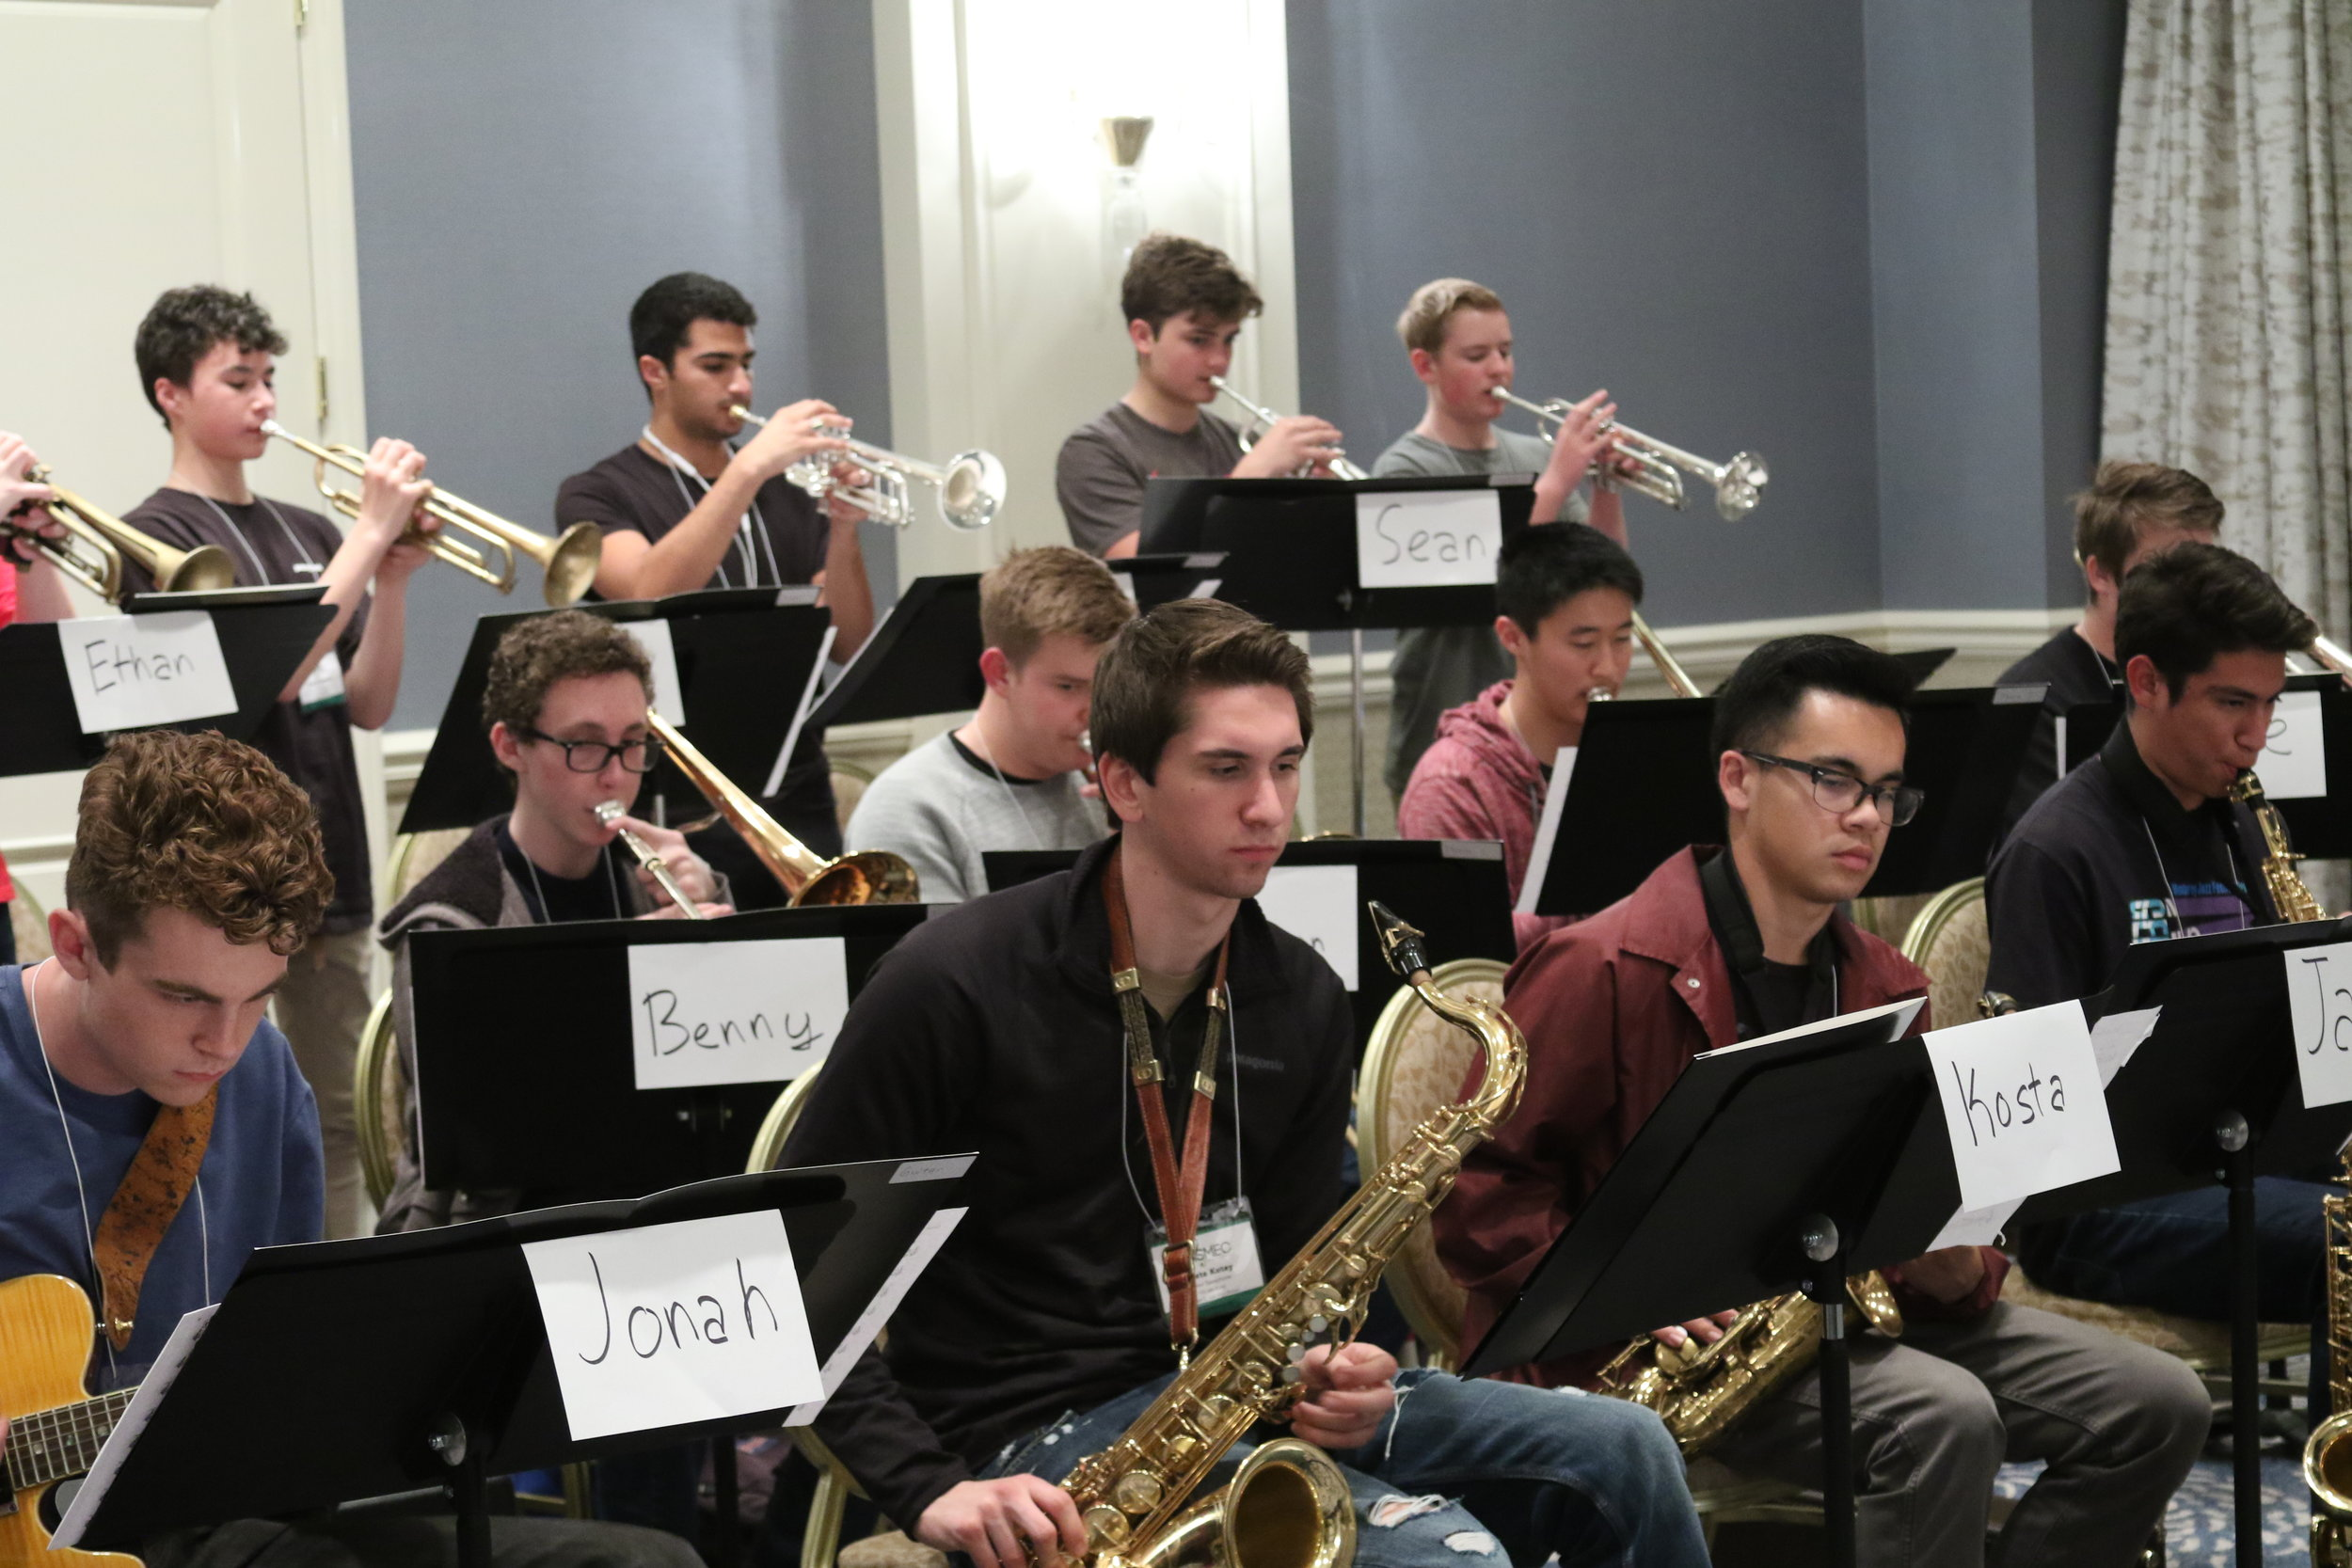 High School Jazz Band directed by Dana Landry - Check out the pictures of the students in rehearsals